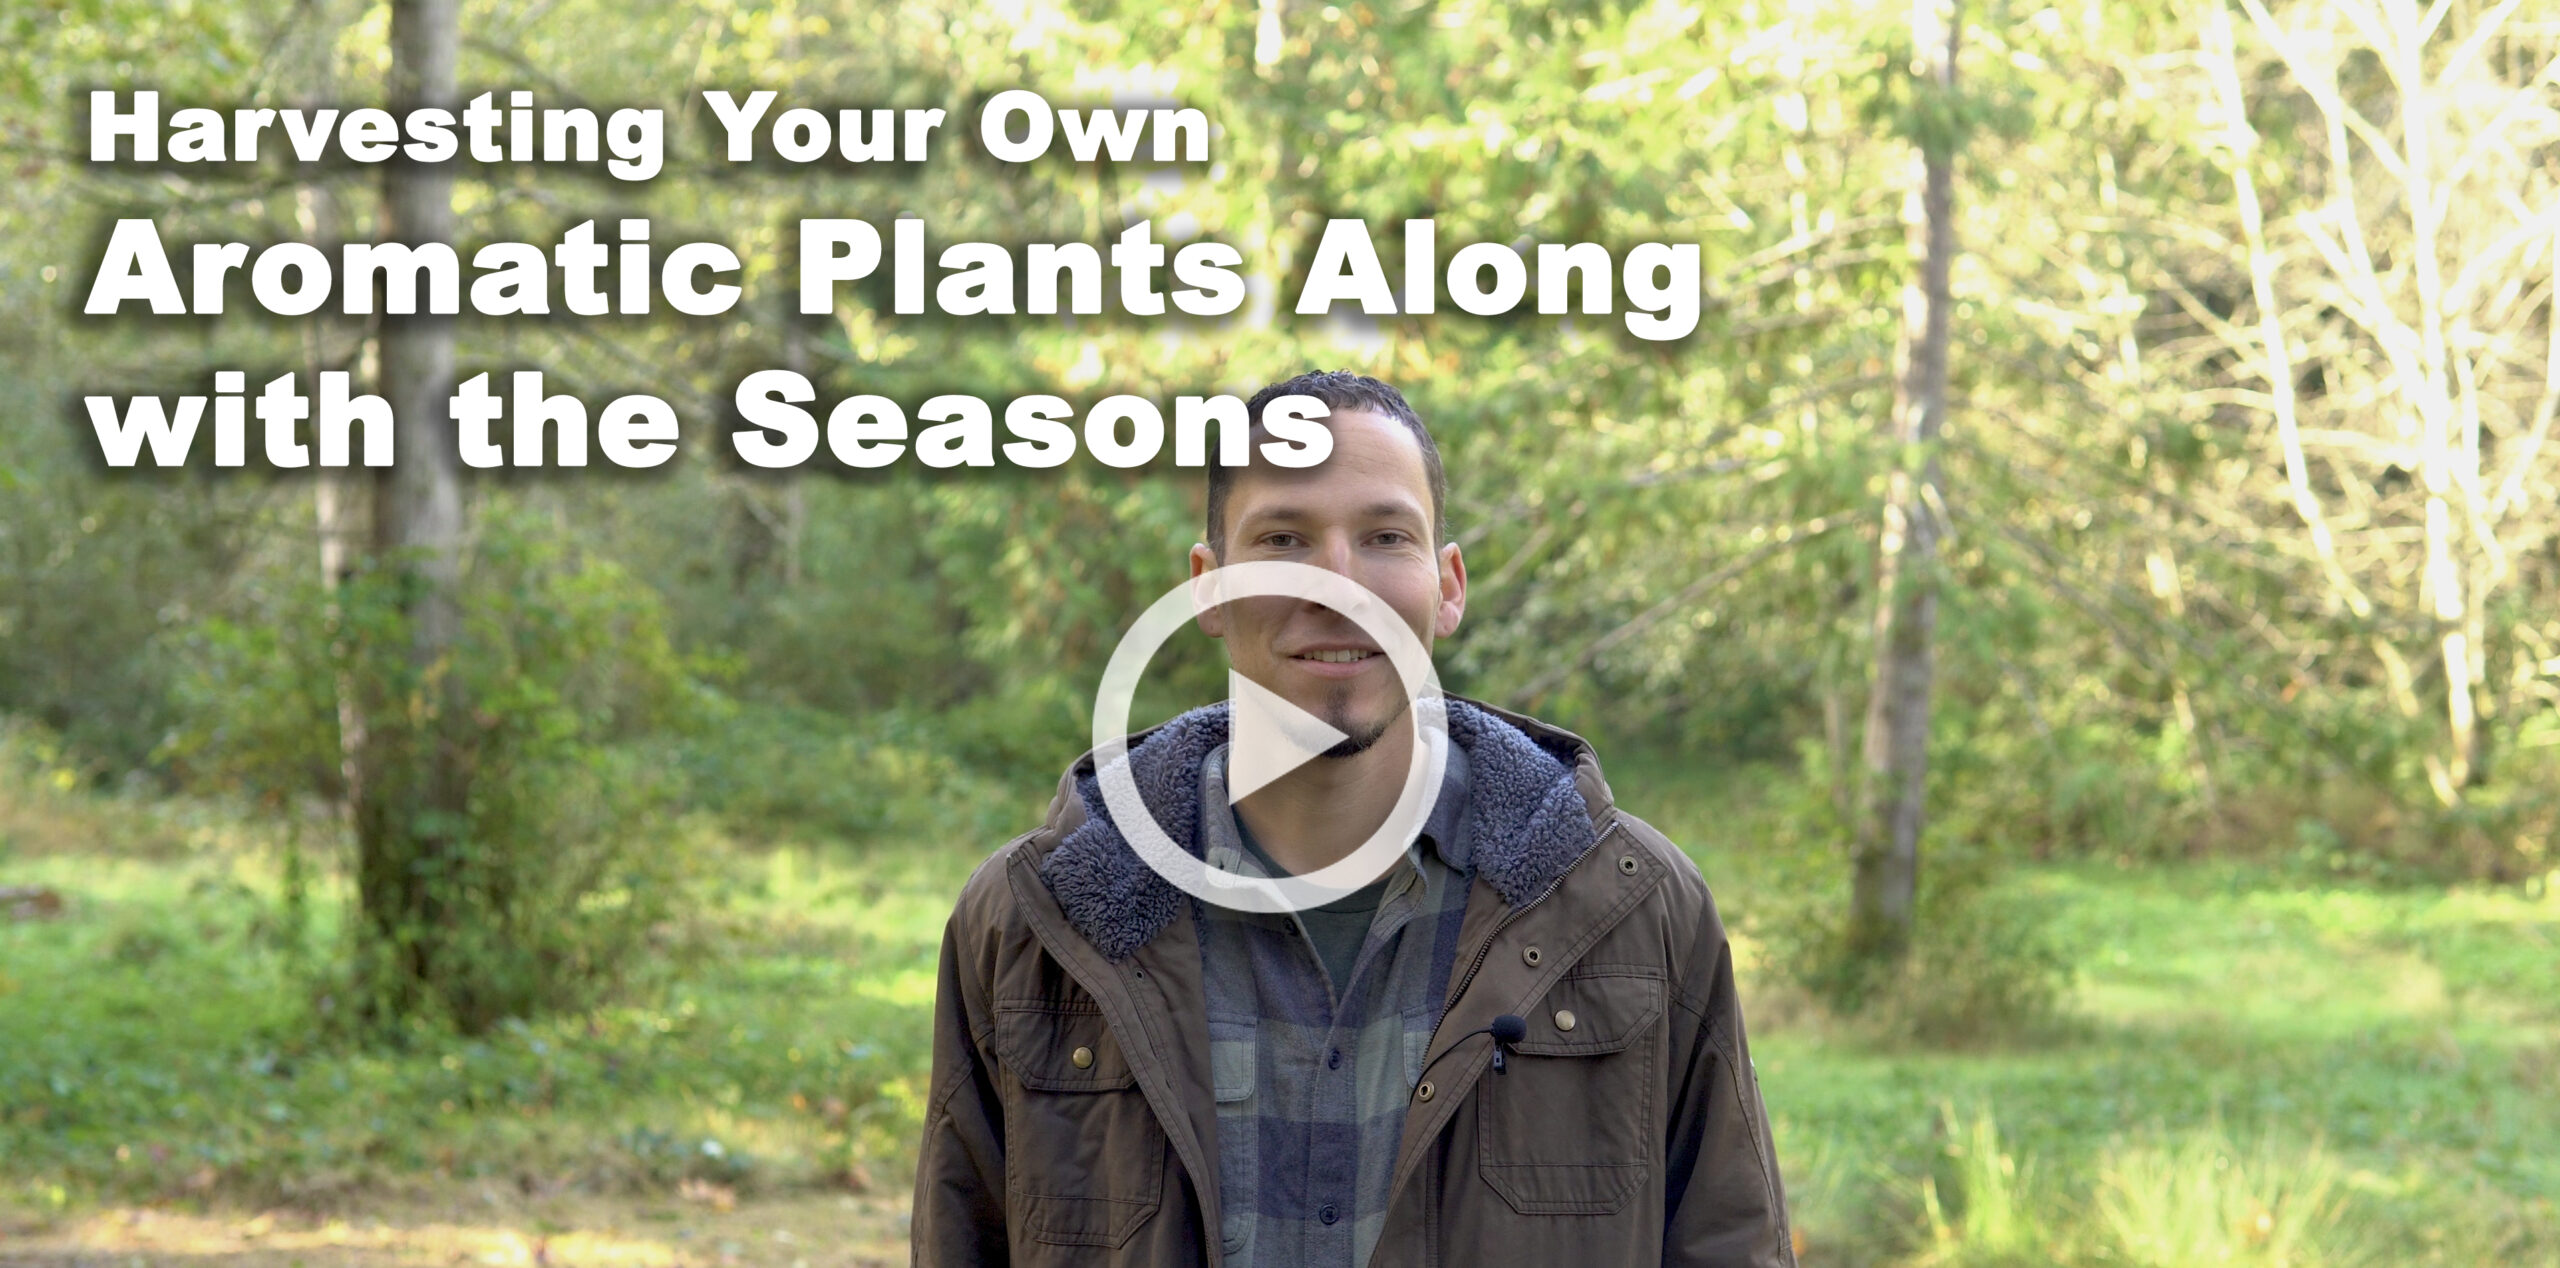 Harvesting Your Own Aromatic Plants Along with the Seasons